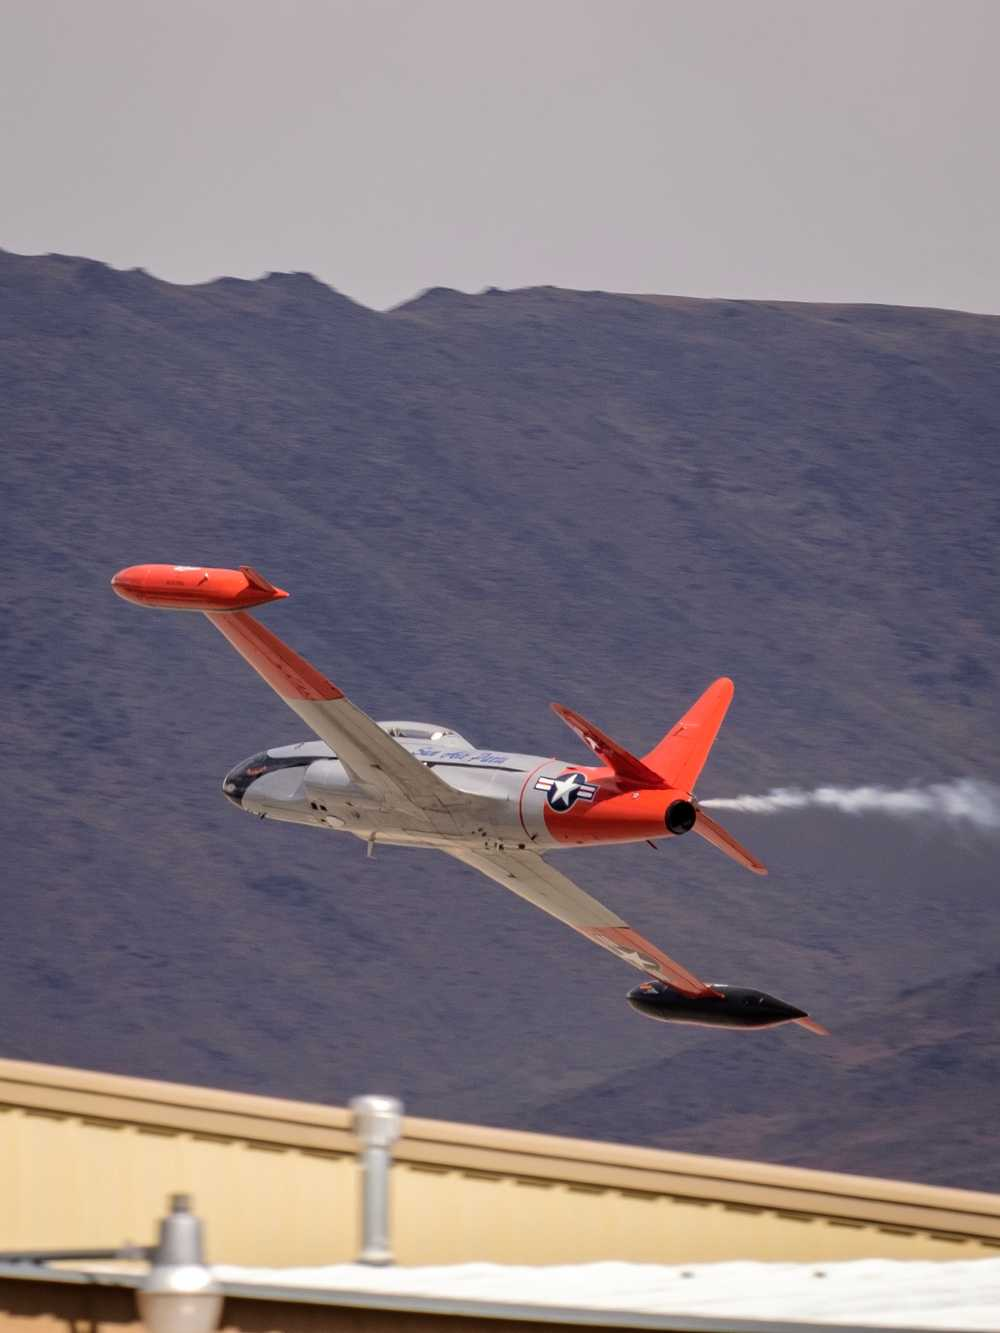 T-33 chase plane